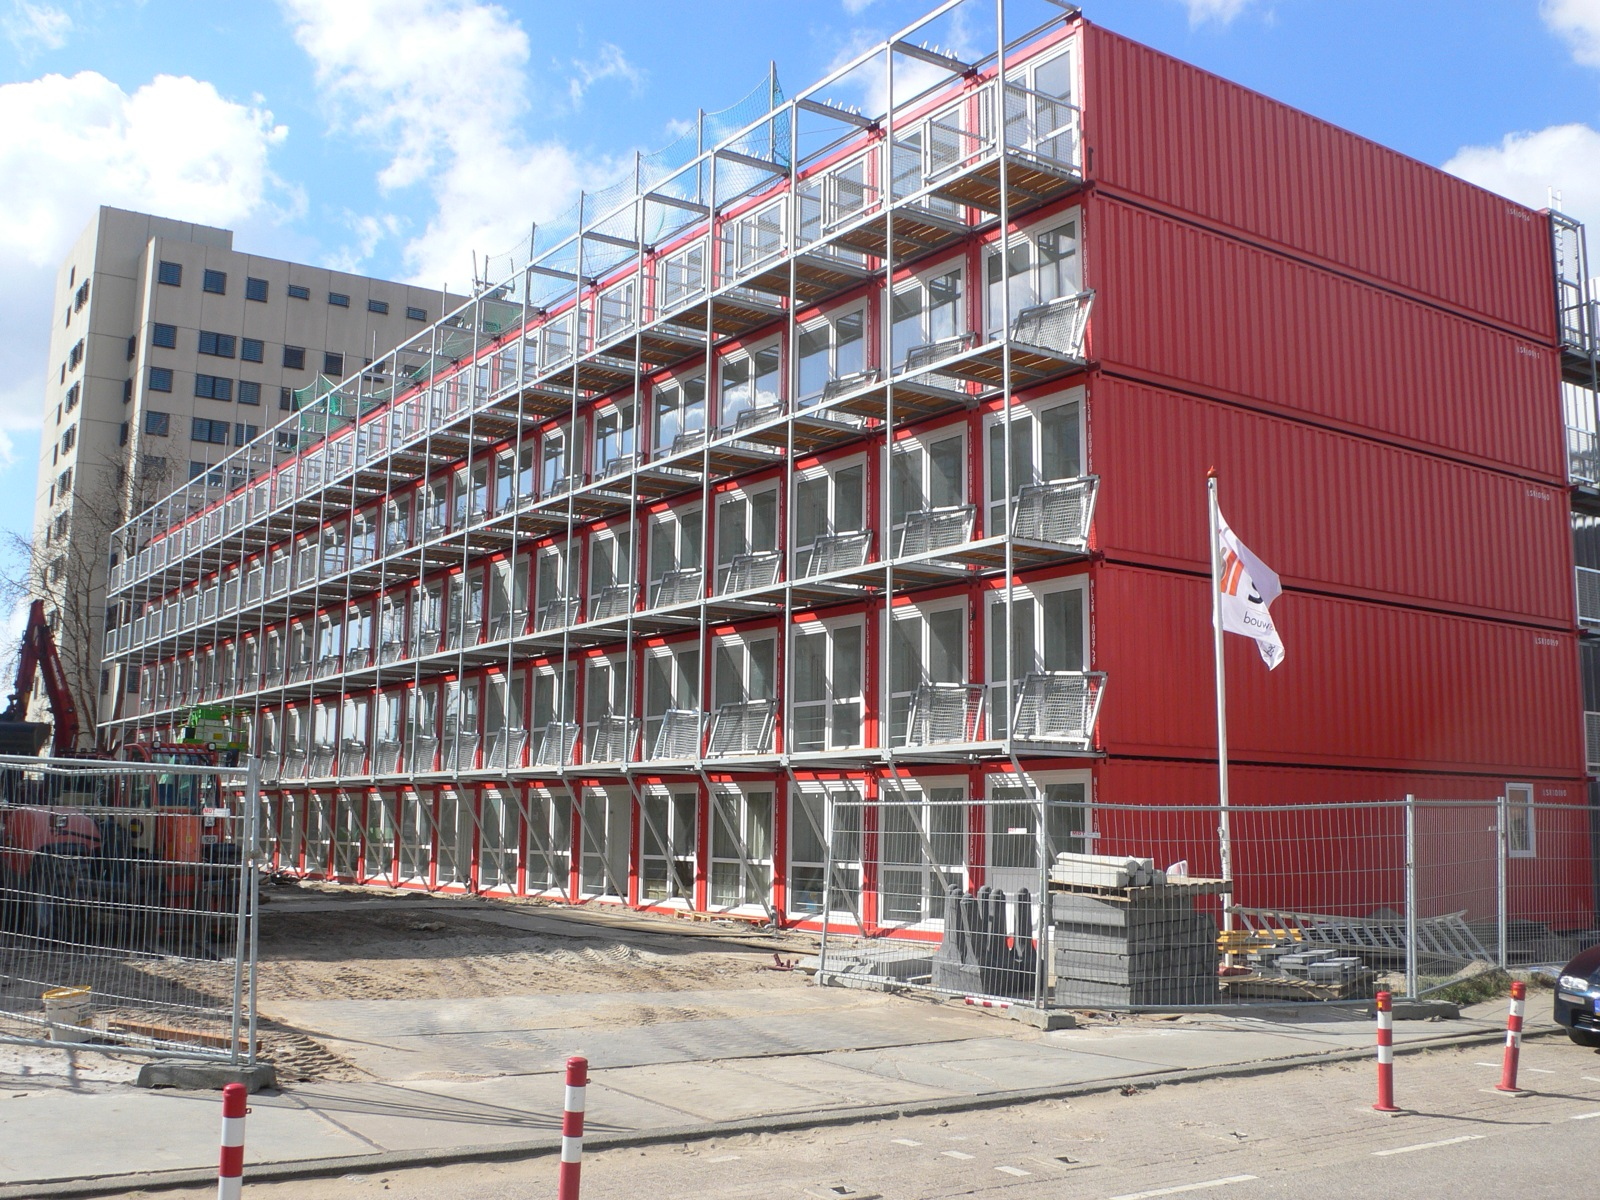 shipping container apartments - amsterdam | Flickr - Photo ...